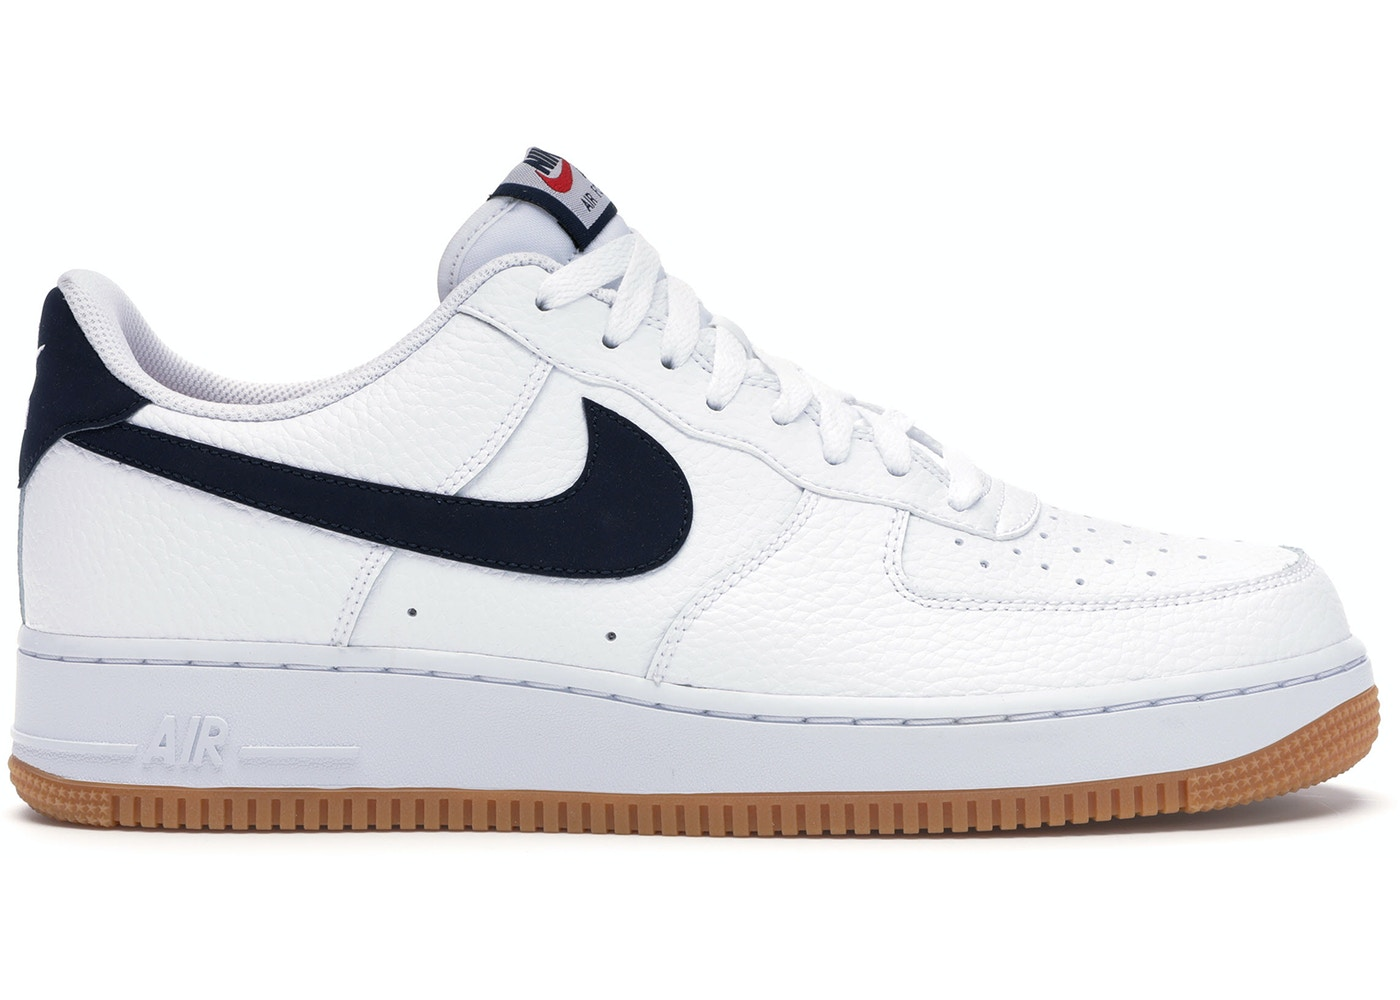 Nike Air Force 1 Low 07 White Obsidian Ci0057 100